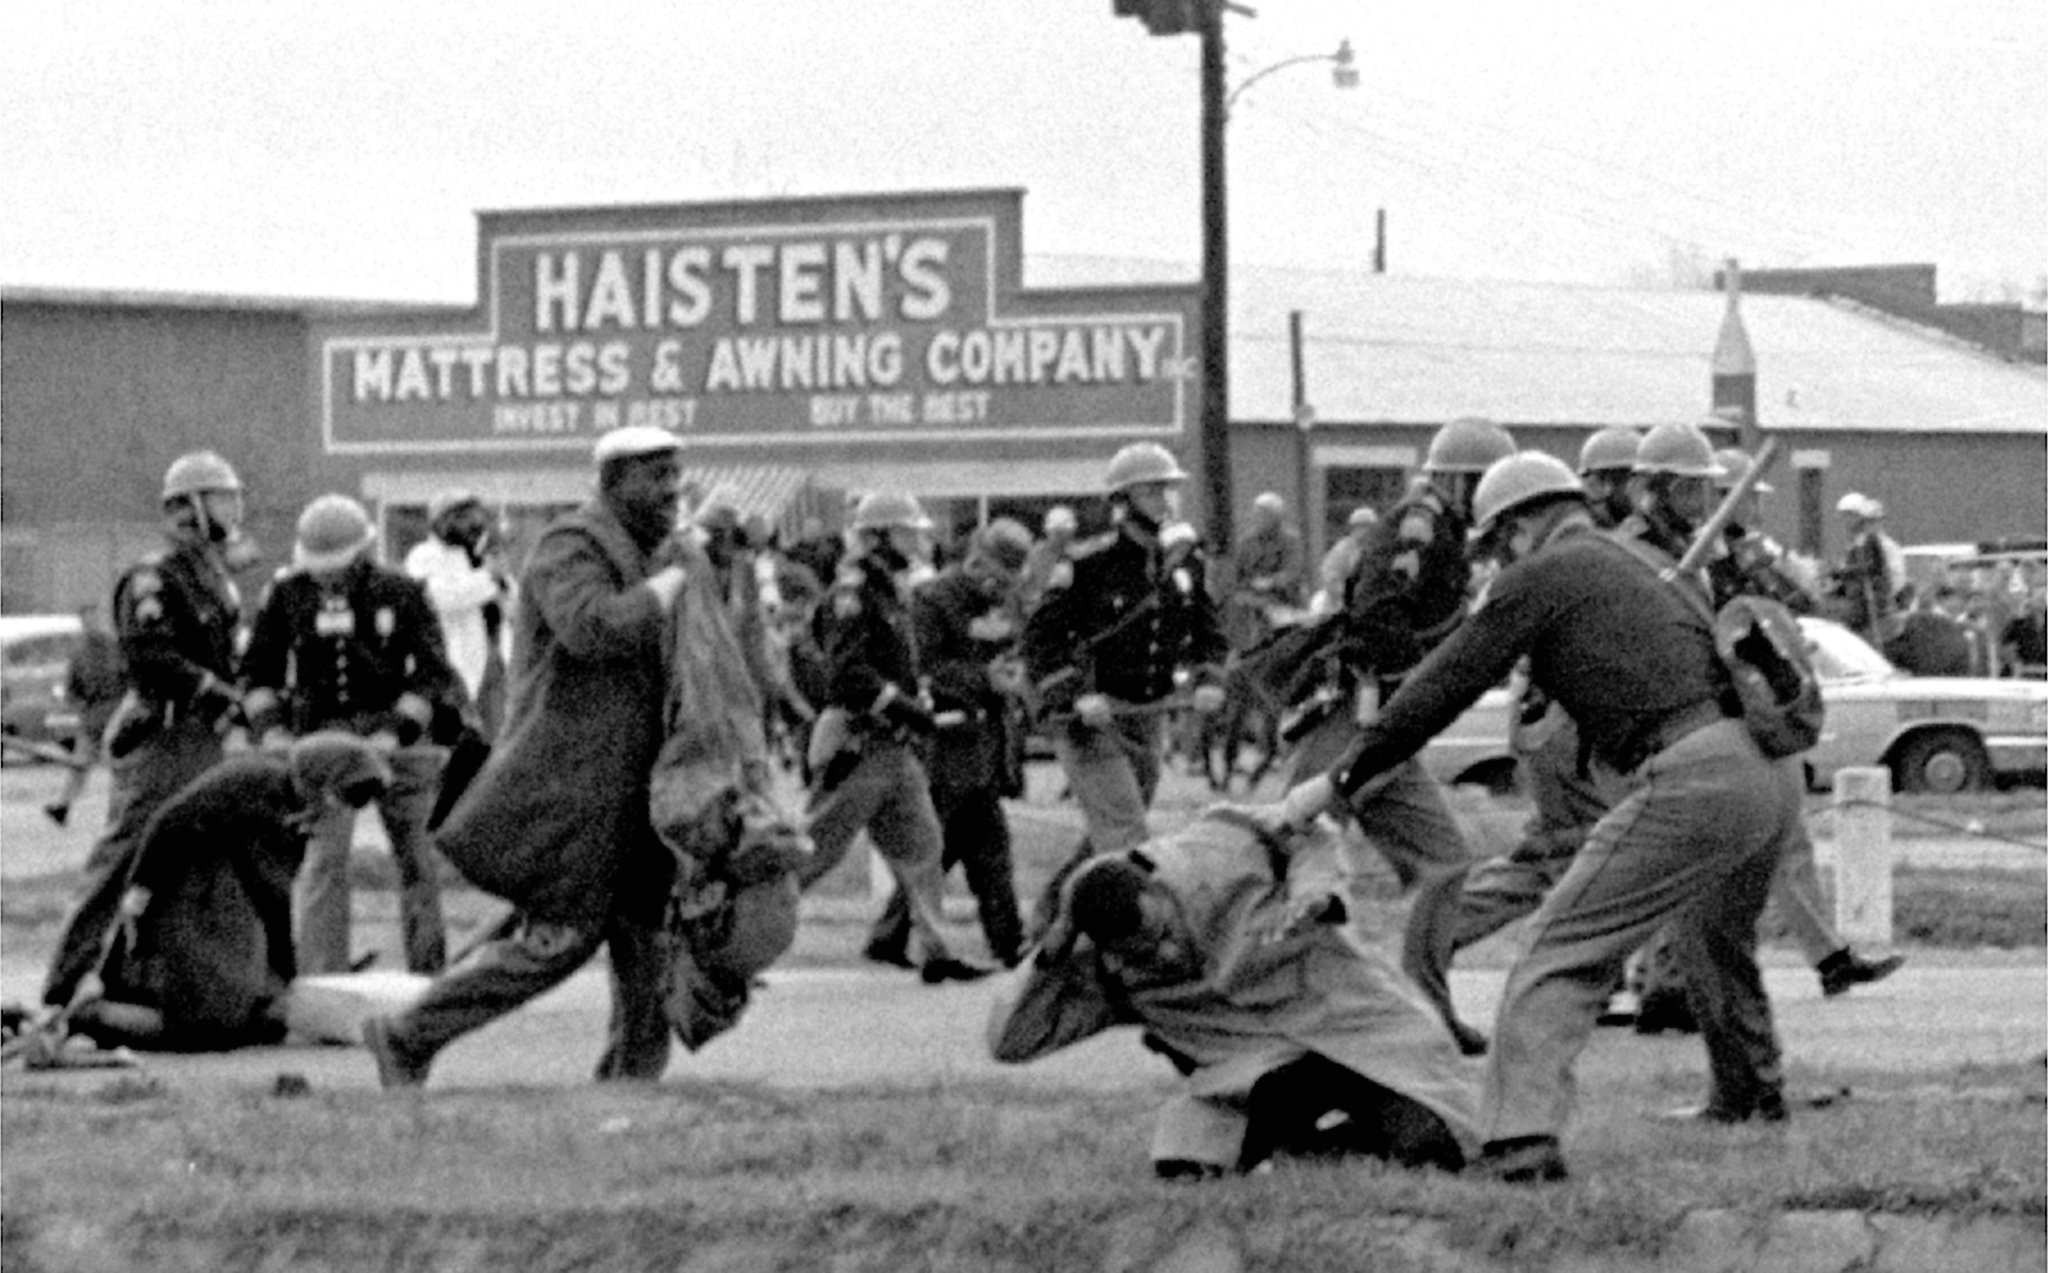 Trump kicks off Martin Luther King weekend by attacking civil rights legend John Lewis